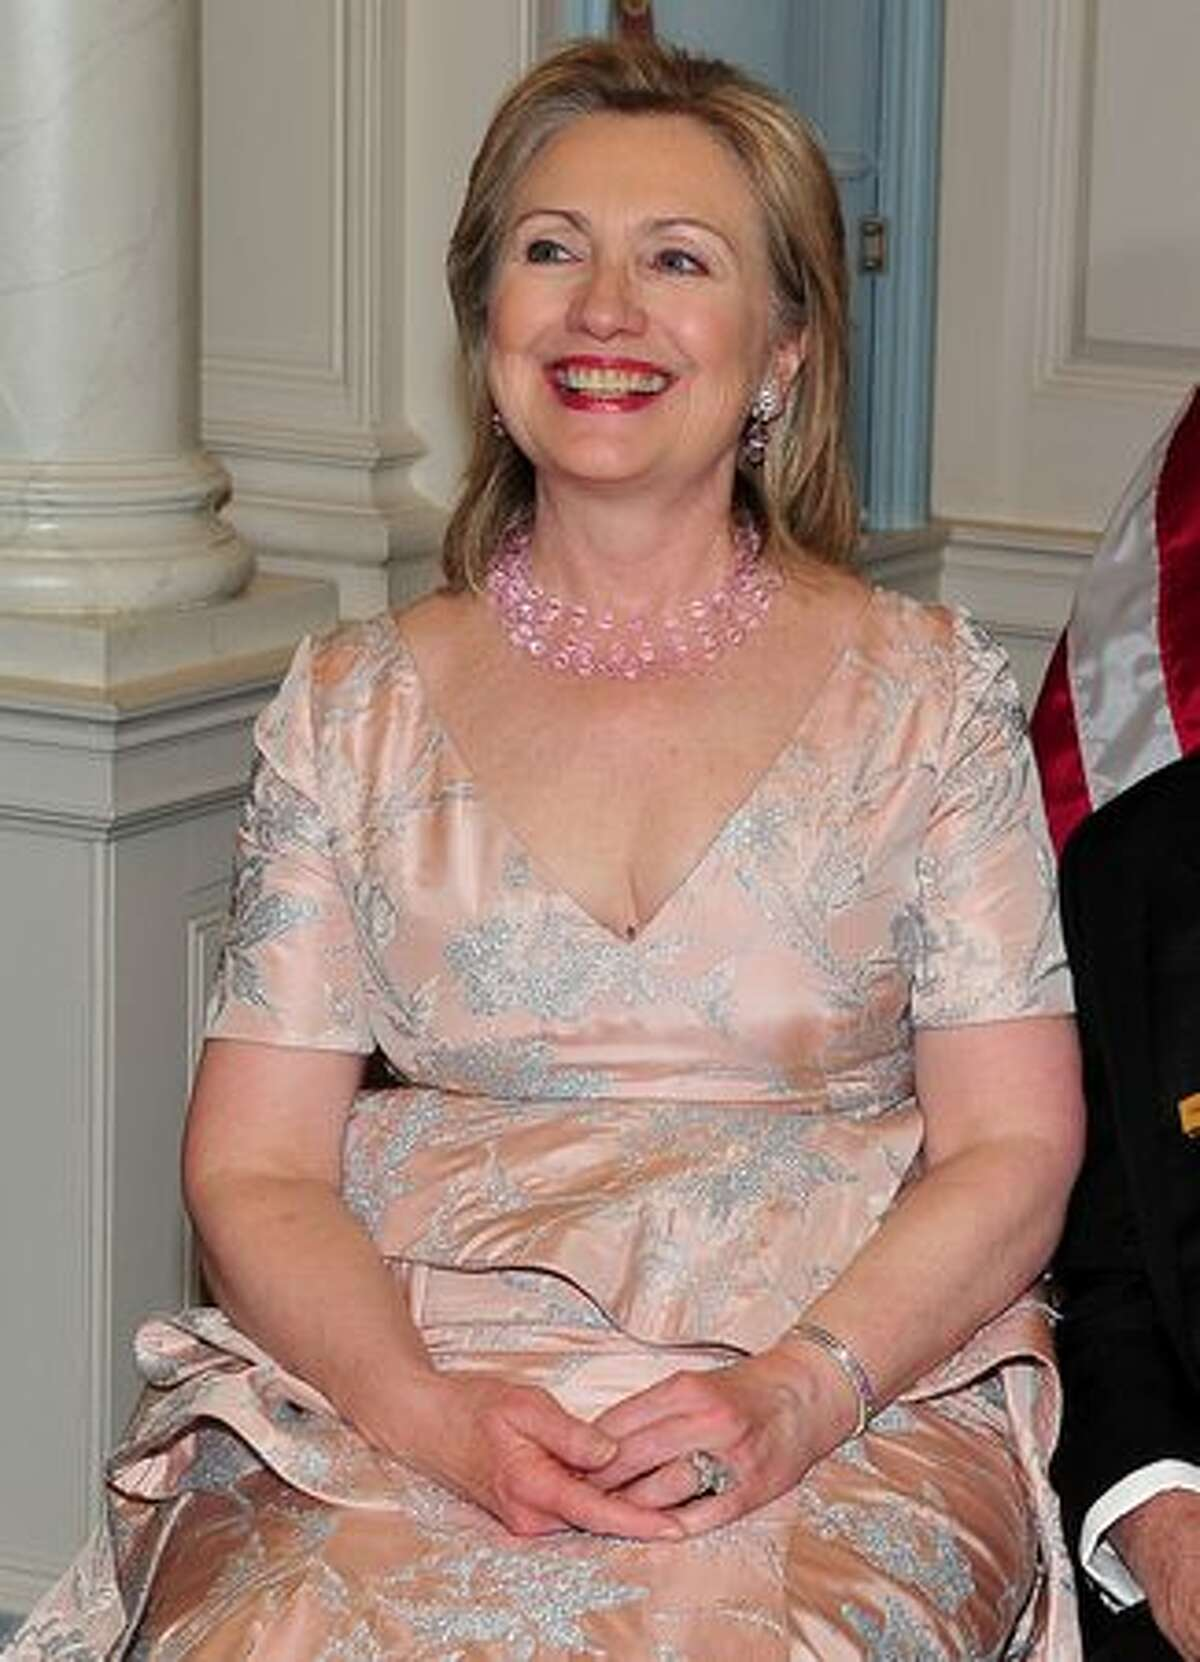 United States Secretary of State Hillary Rodham Clinton smiles as she joins the 2010 Kennedy Center honorees for their formal class photo following the formal Artist's Dinner at the United States Department of State in Washington, D.C. (Photo by Ron Sachs-Pool/Getty Images).